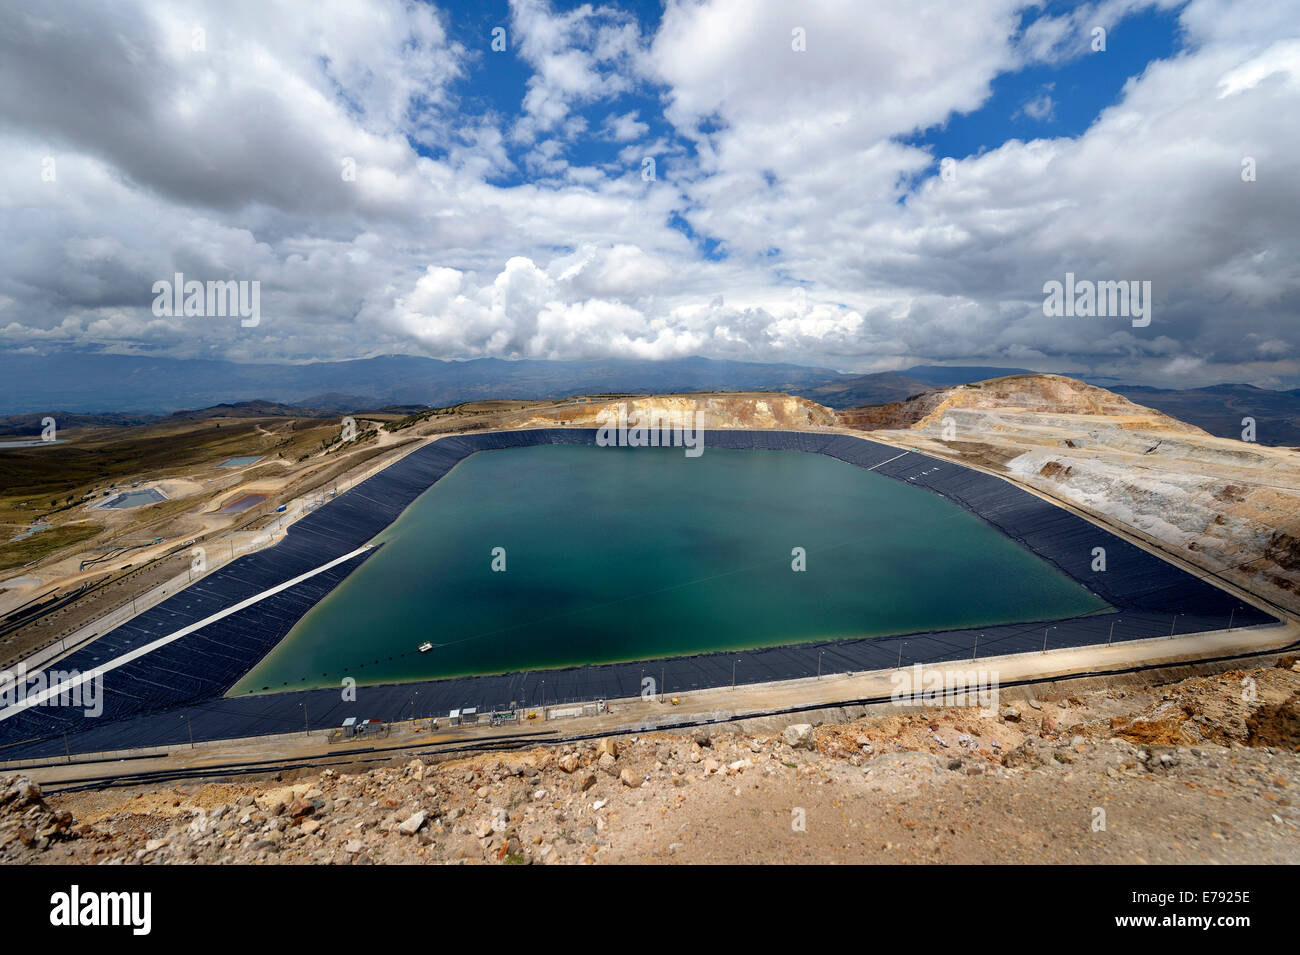 Reservoir for acidic, polluting effluents generated by the mine, Yanacocha Gold Mine, Cajamarca, Cajamarca region, - Stock Image